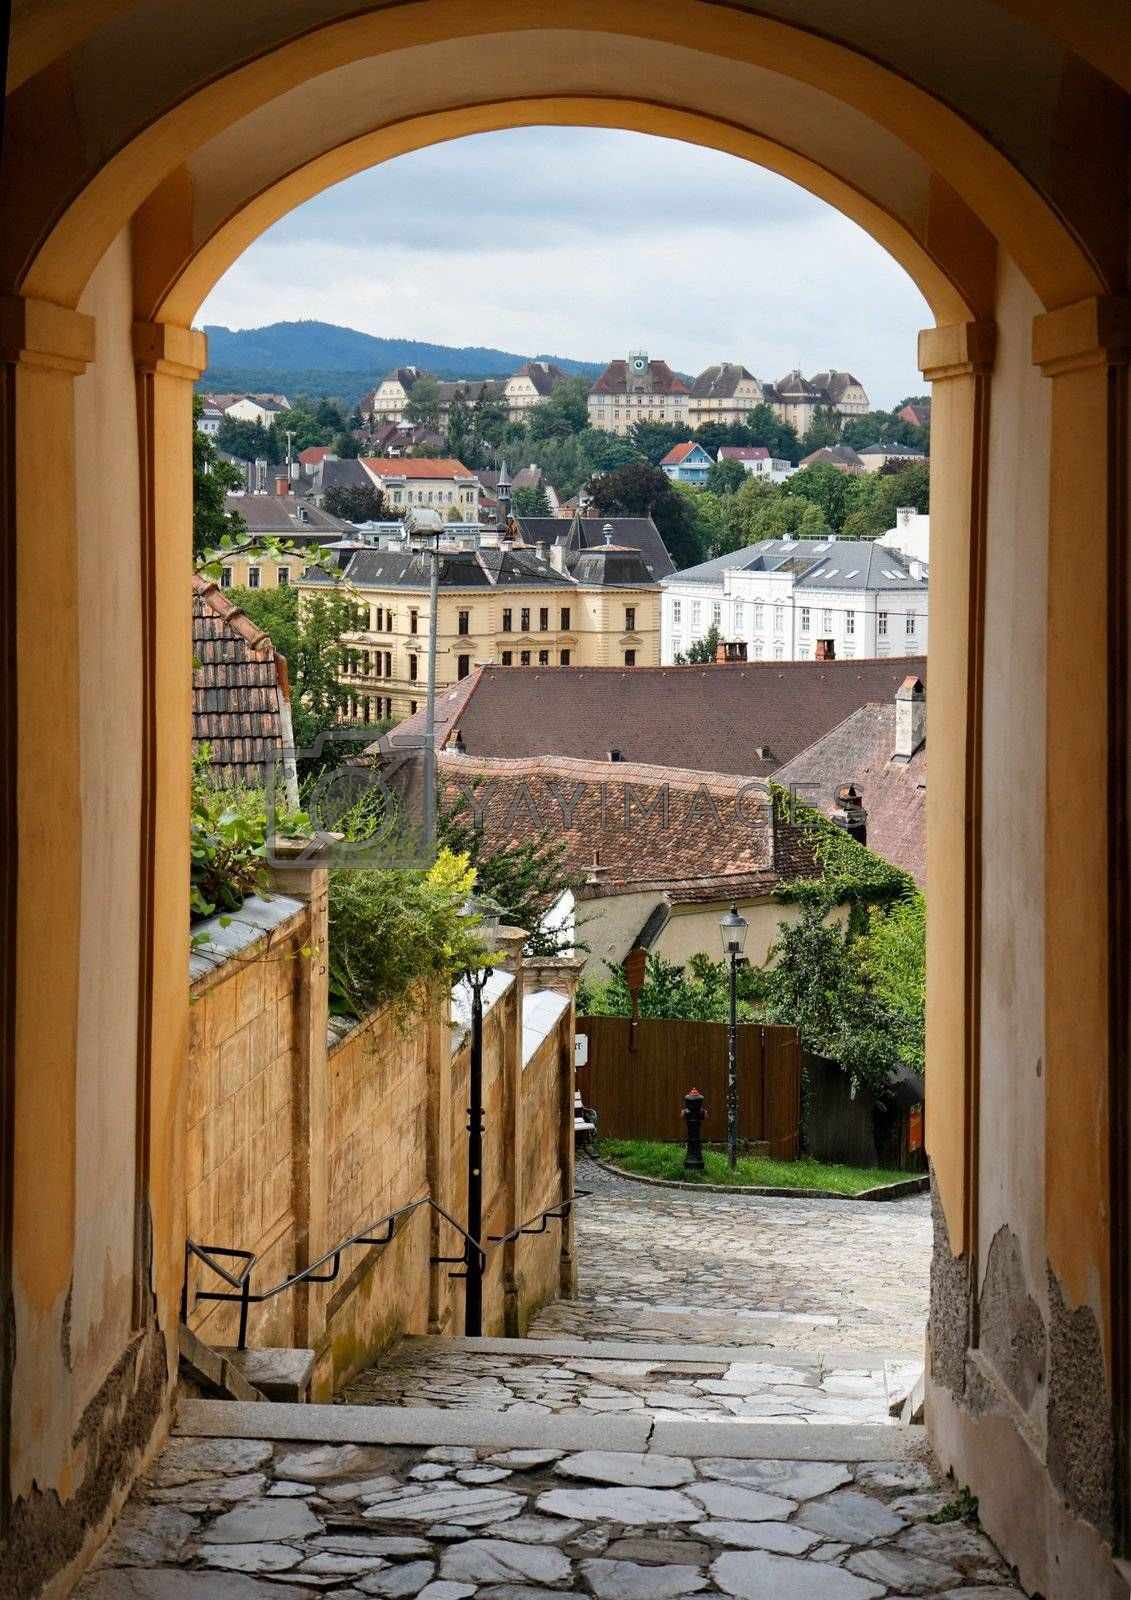 Royalty free image of View of the Melk town in Austria through the archway by slavapolo